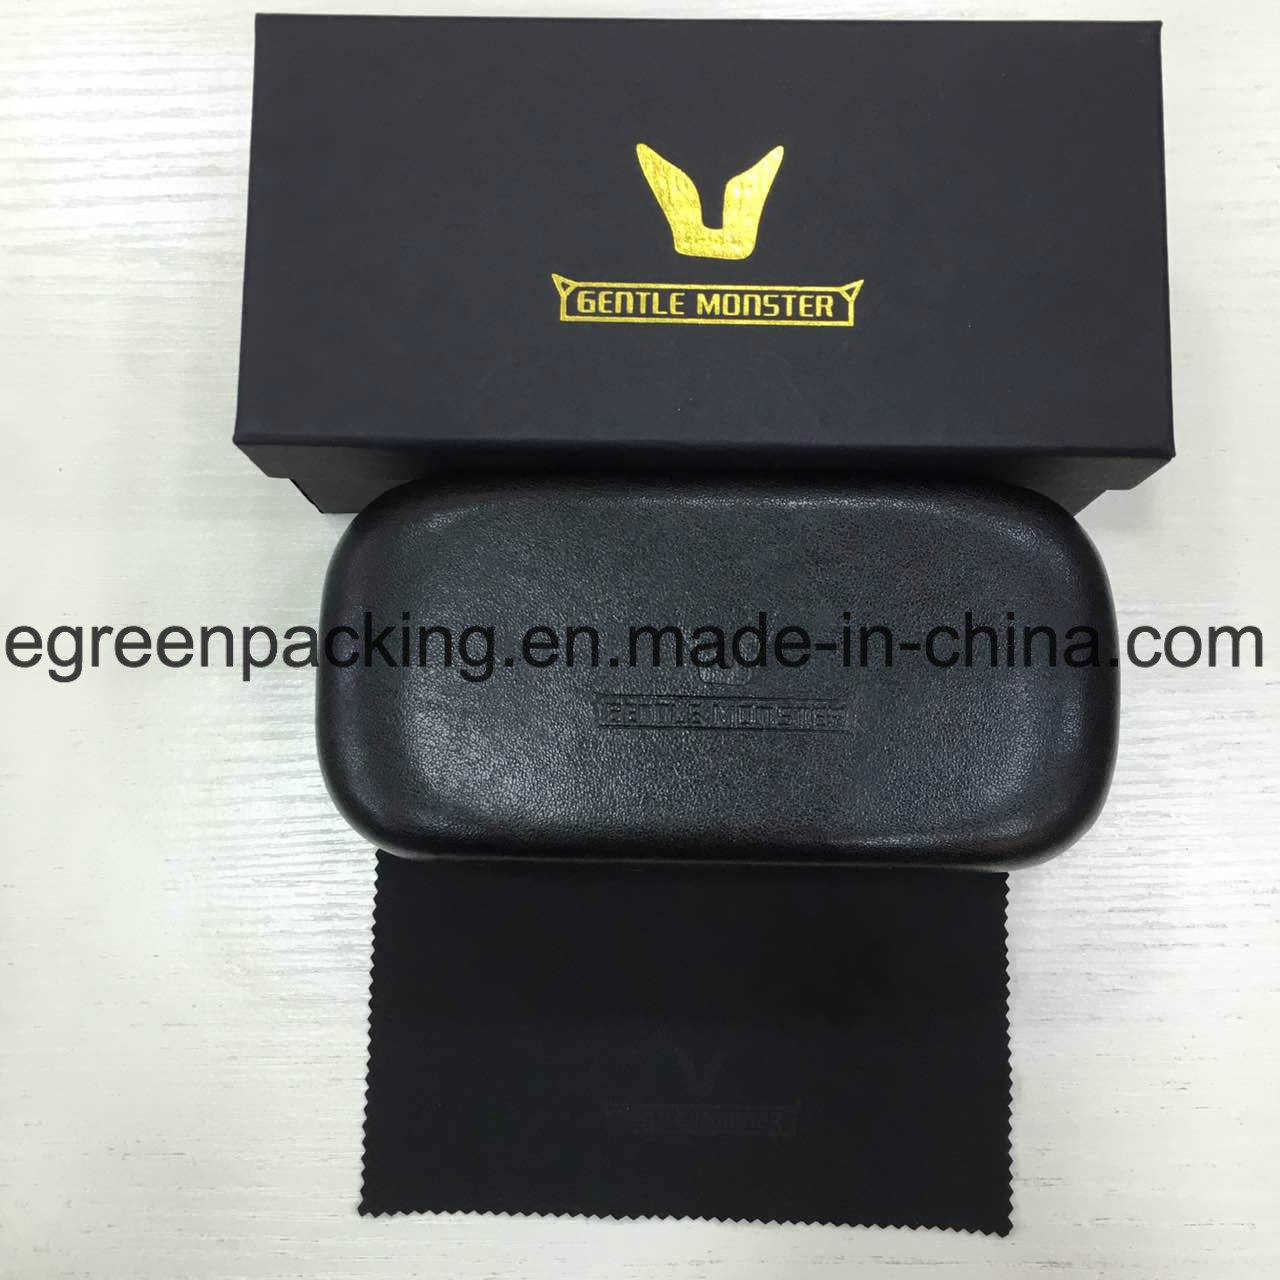 OEM Sunglasses Case (cloth, pouch, metal case, paper box) (SS7)